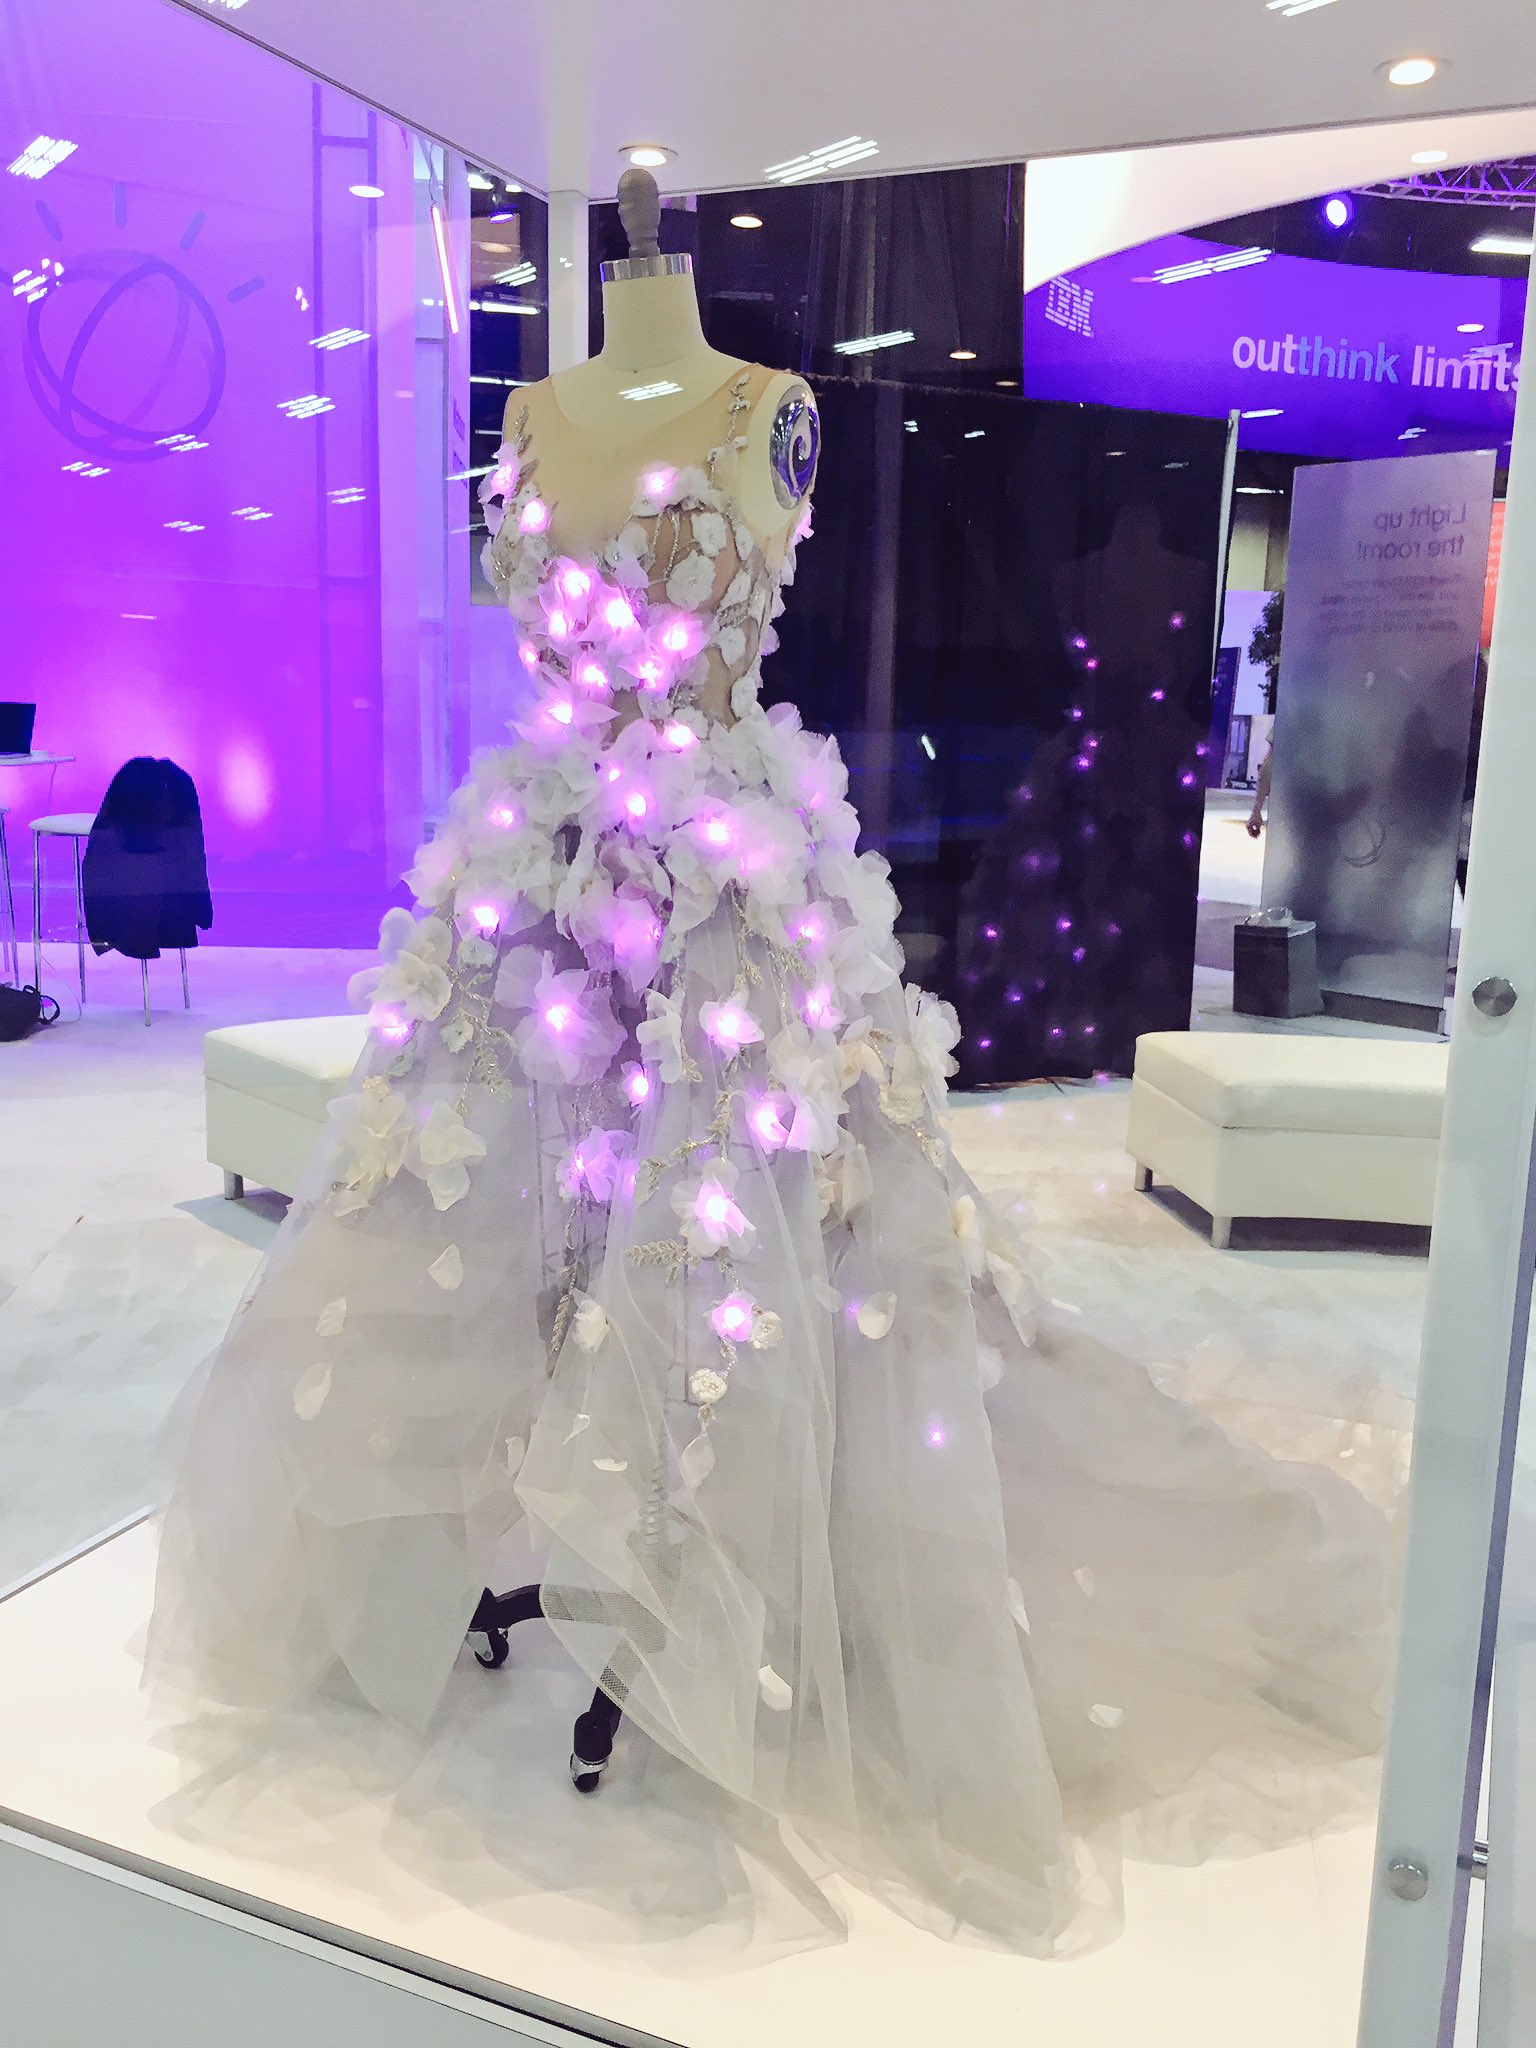 Cognitive comes to life in the Cognitive Concourse. 💜 the @MarchesaFashion dress! https://t.co/CiGgPXsa3h #WatsonMarketing #ibmwow https://t.co/ImBl4rktIc